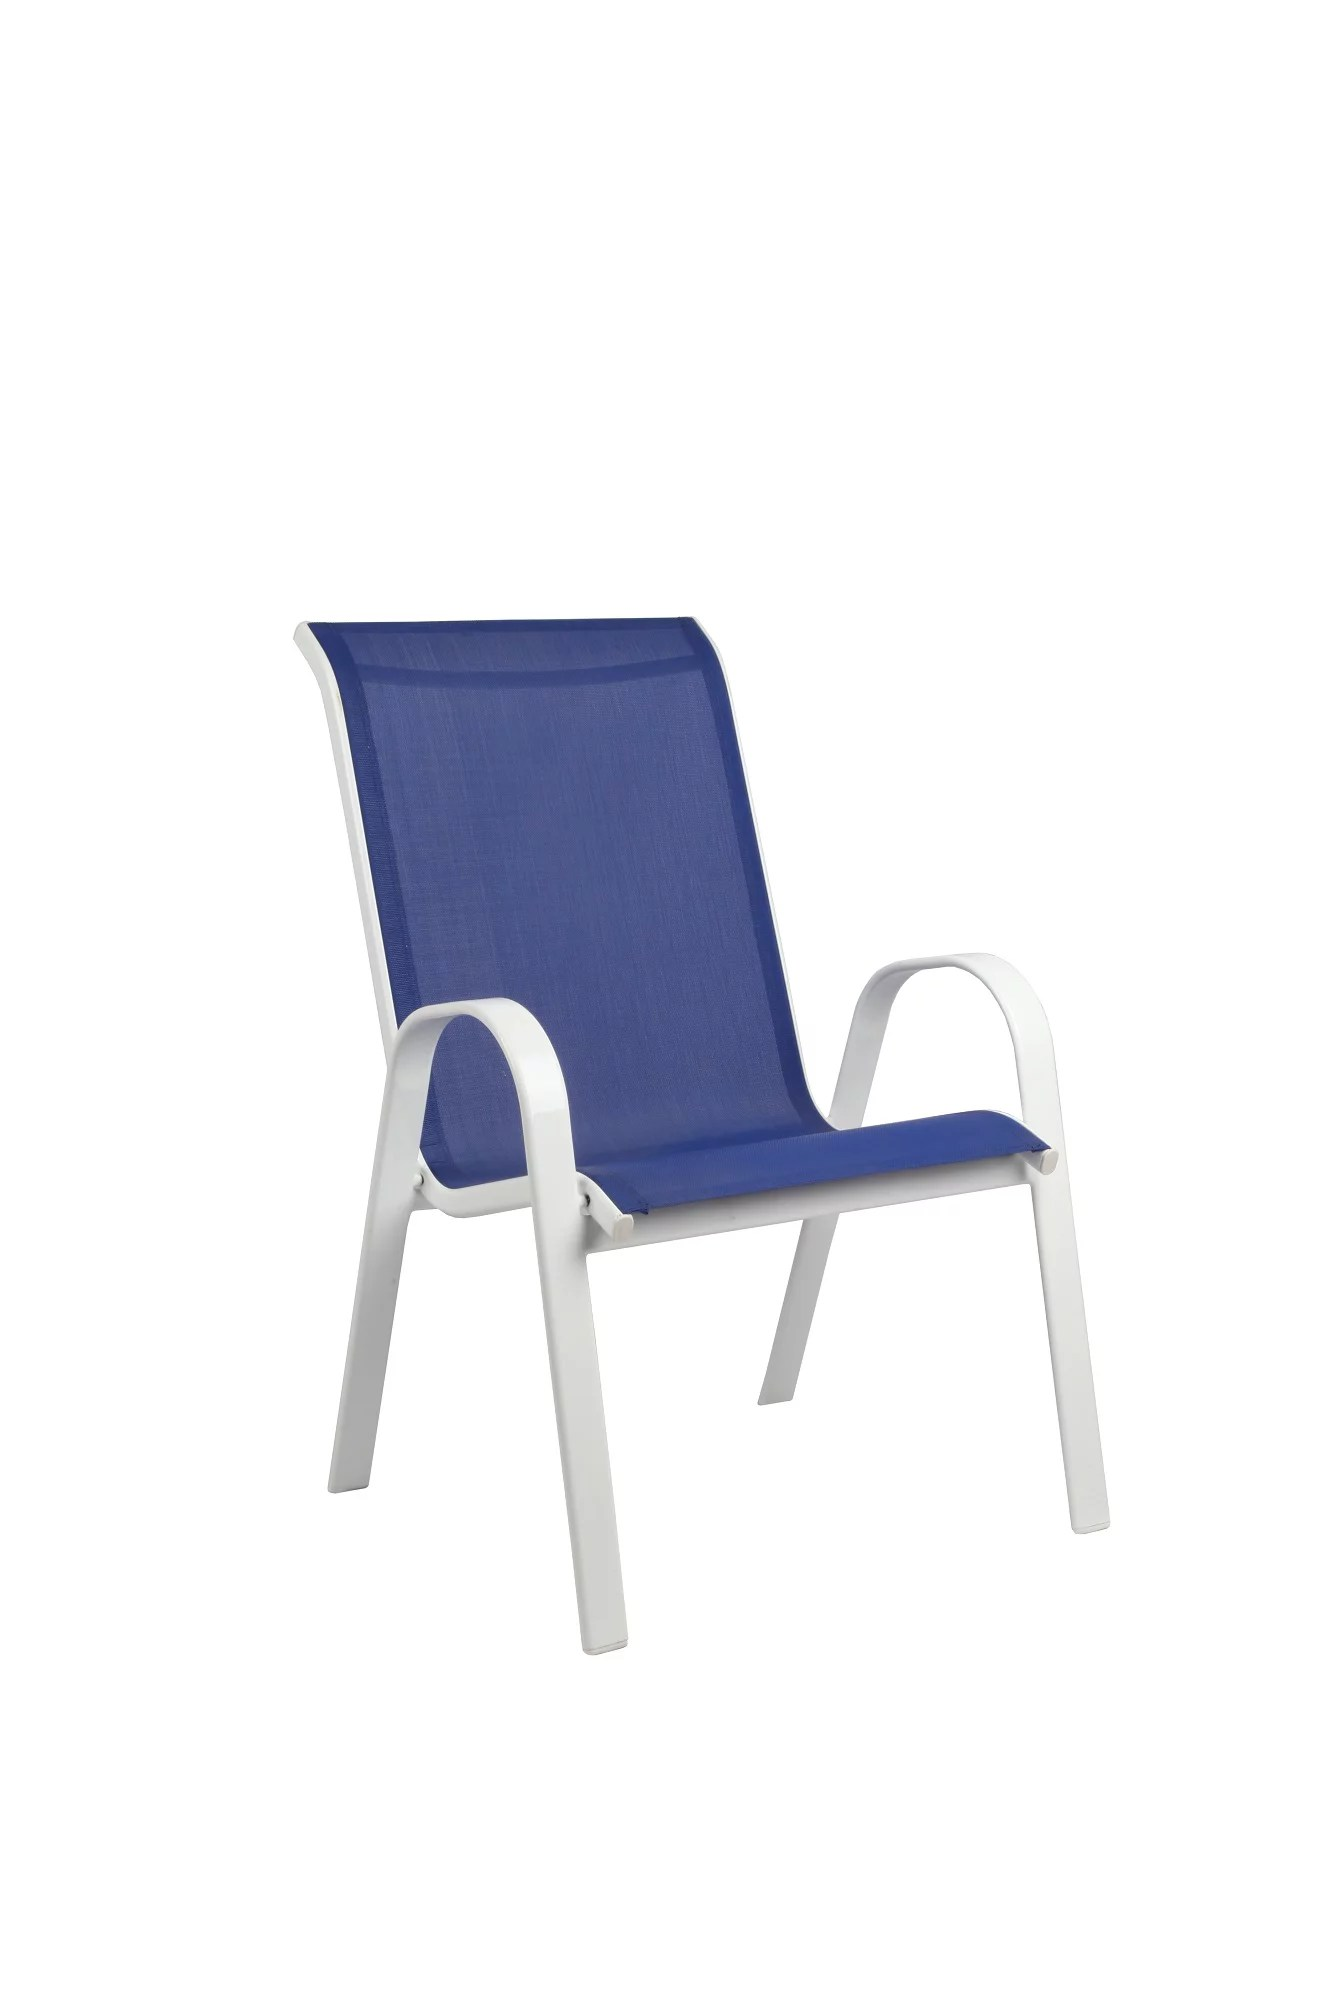 mainstays xl sling chair blue white